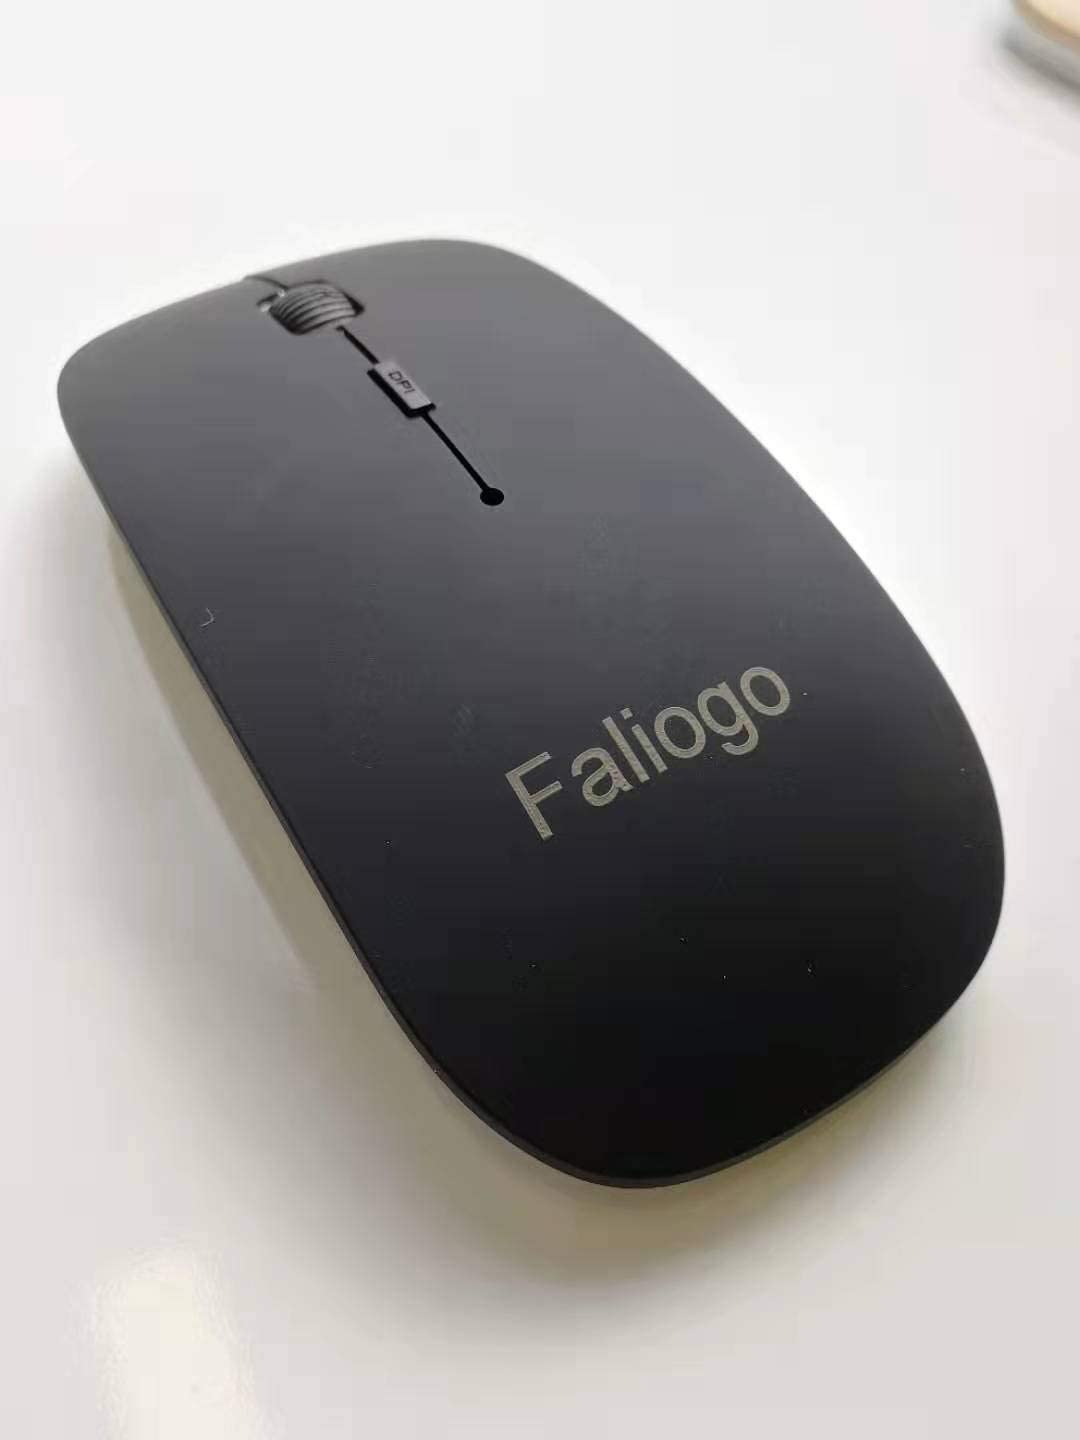 Slim Portable Computer Mouse Notebook Faliogo Wireless Gaming Mouse Laptop and Pad etc Black PC Mobile Optical Mice with Nano Receiver for Computer